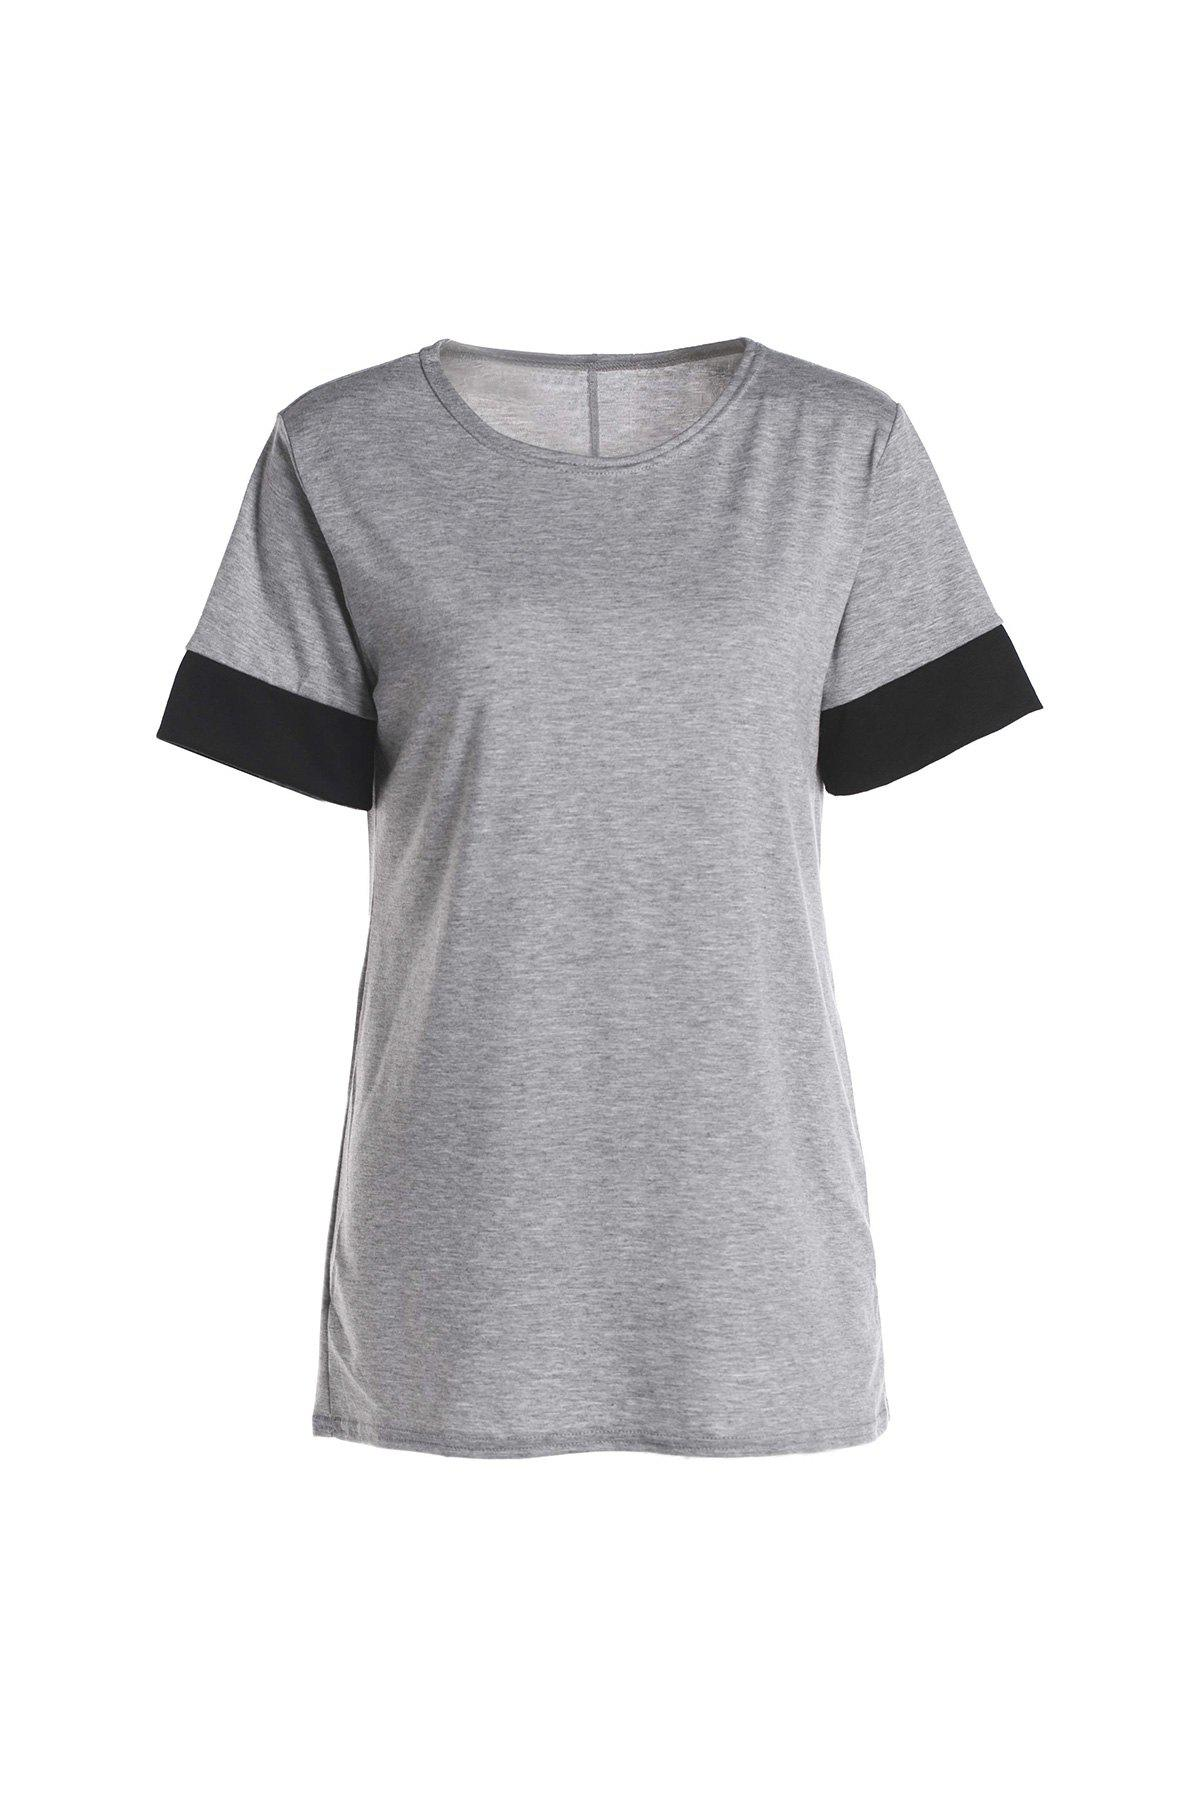 Simple Short Sleeve Scoop Collar Hit Color Women's T-Shirt